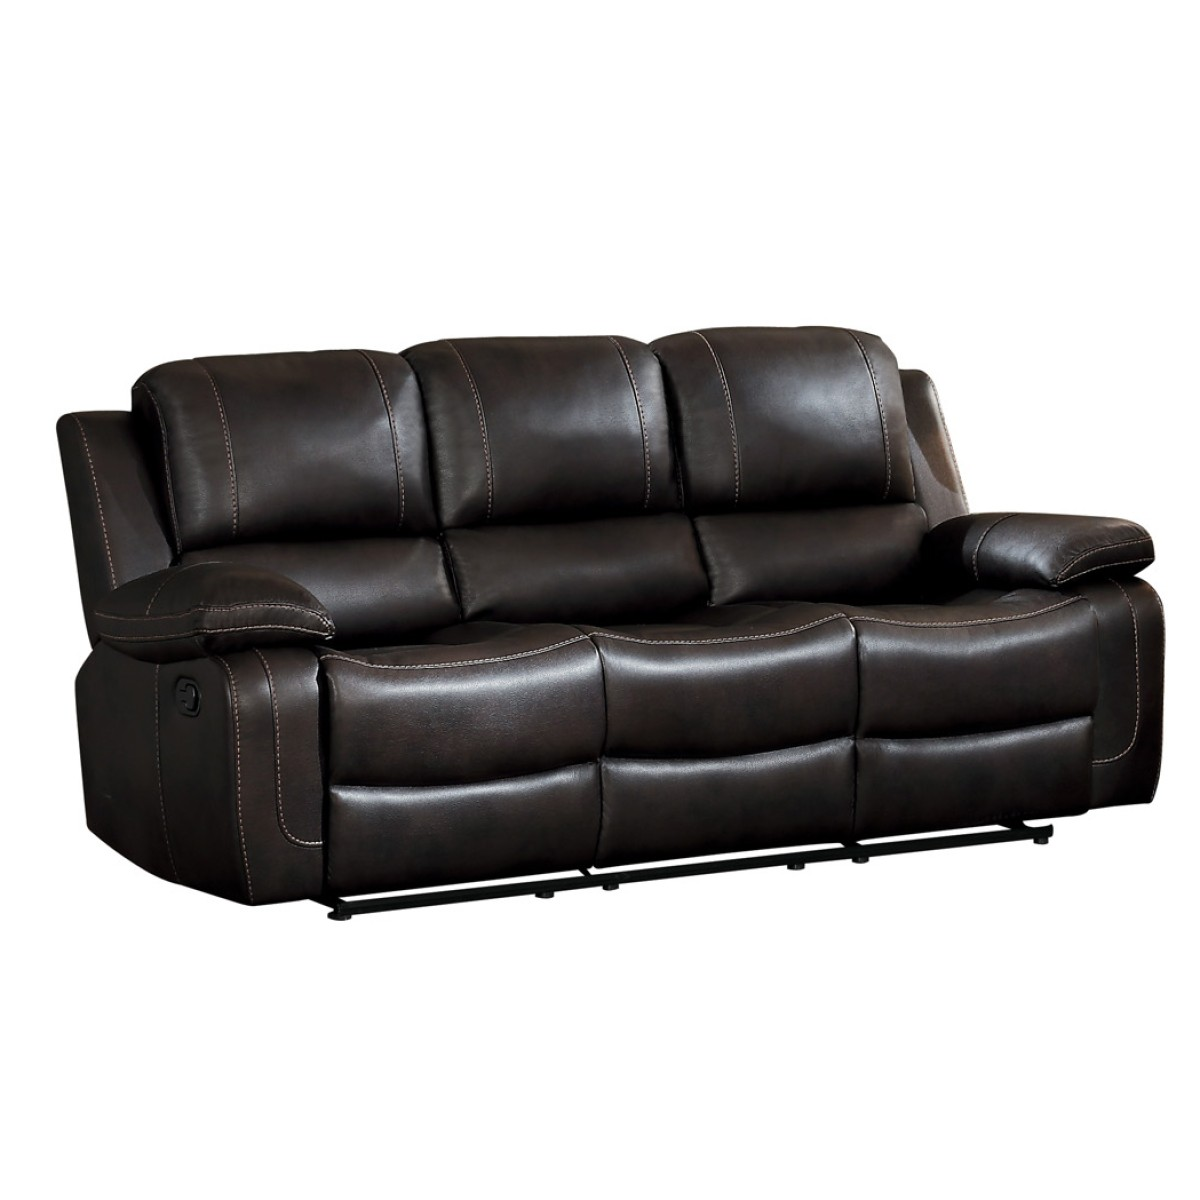 8334dbr 3 Double Reclining Sofa With Center Drop Down Cup